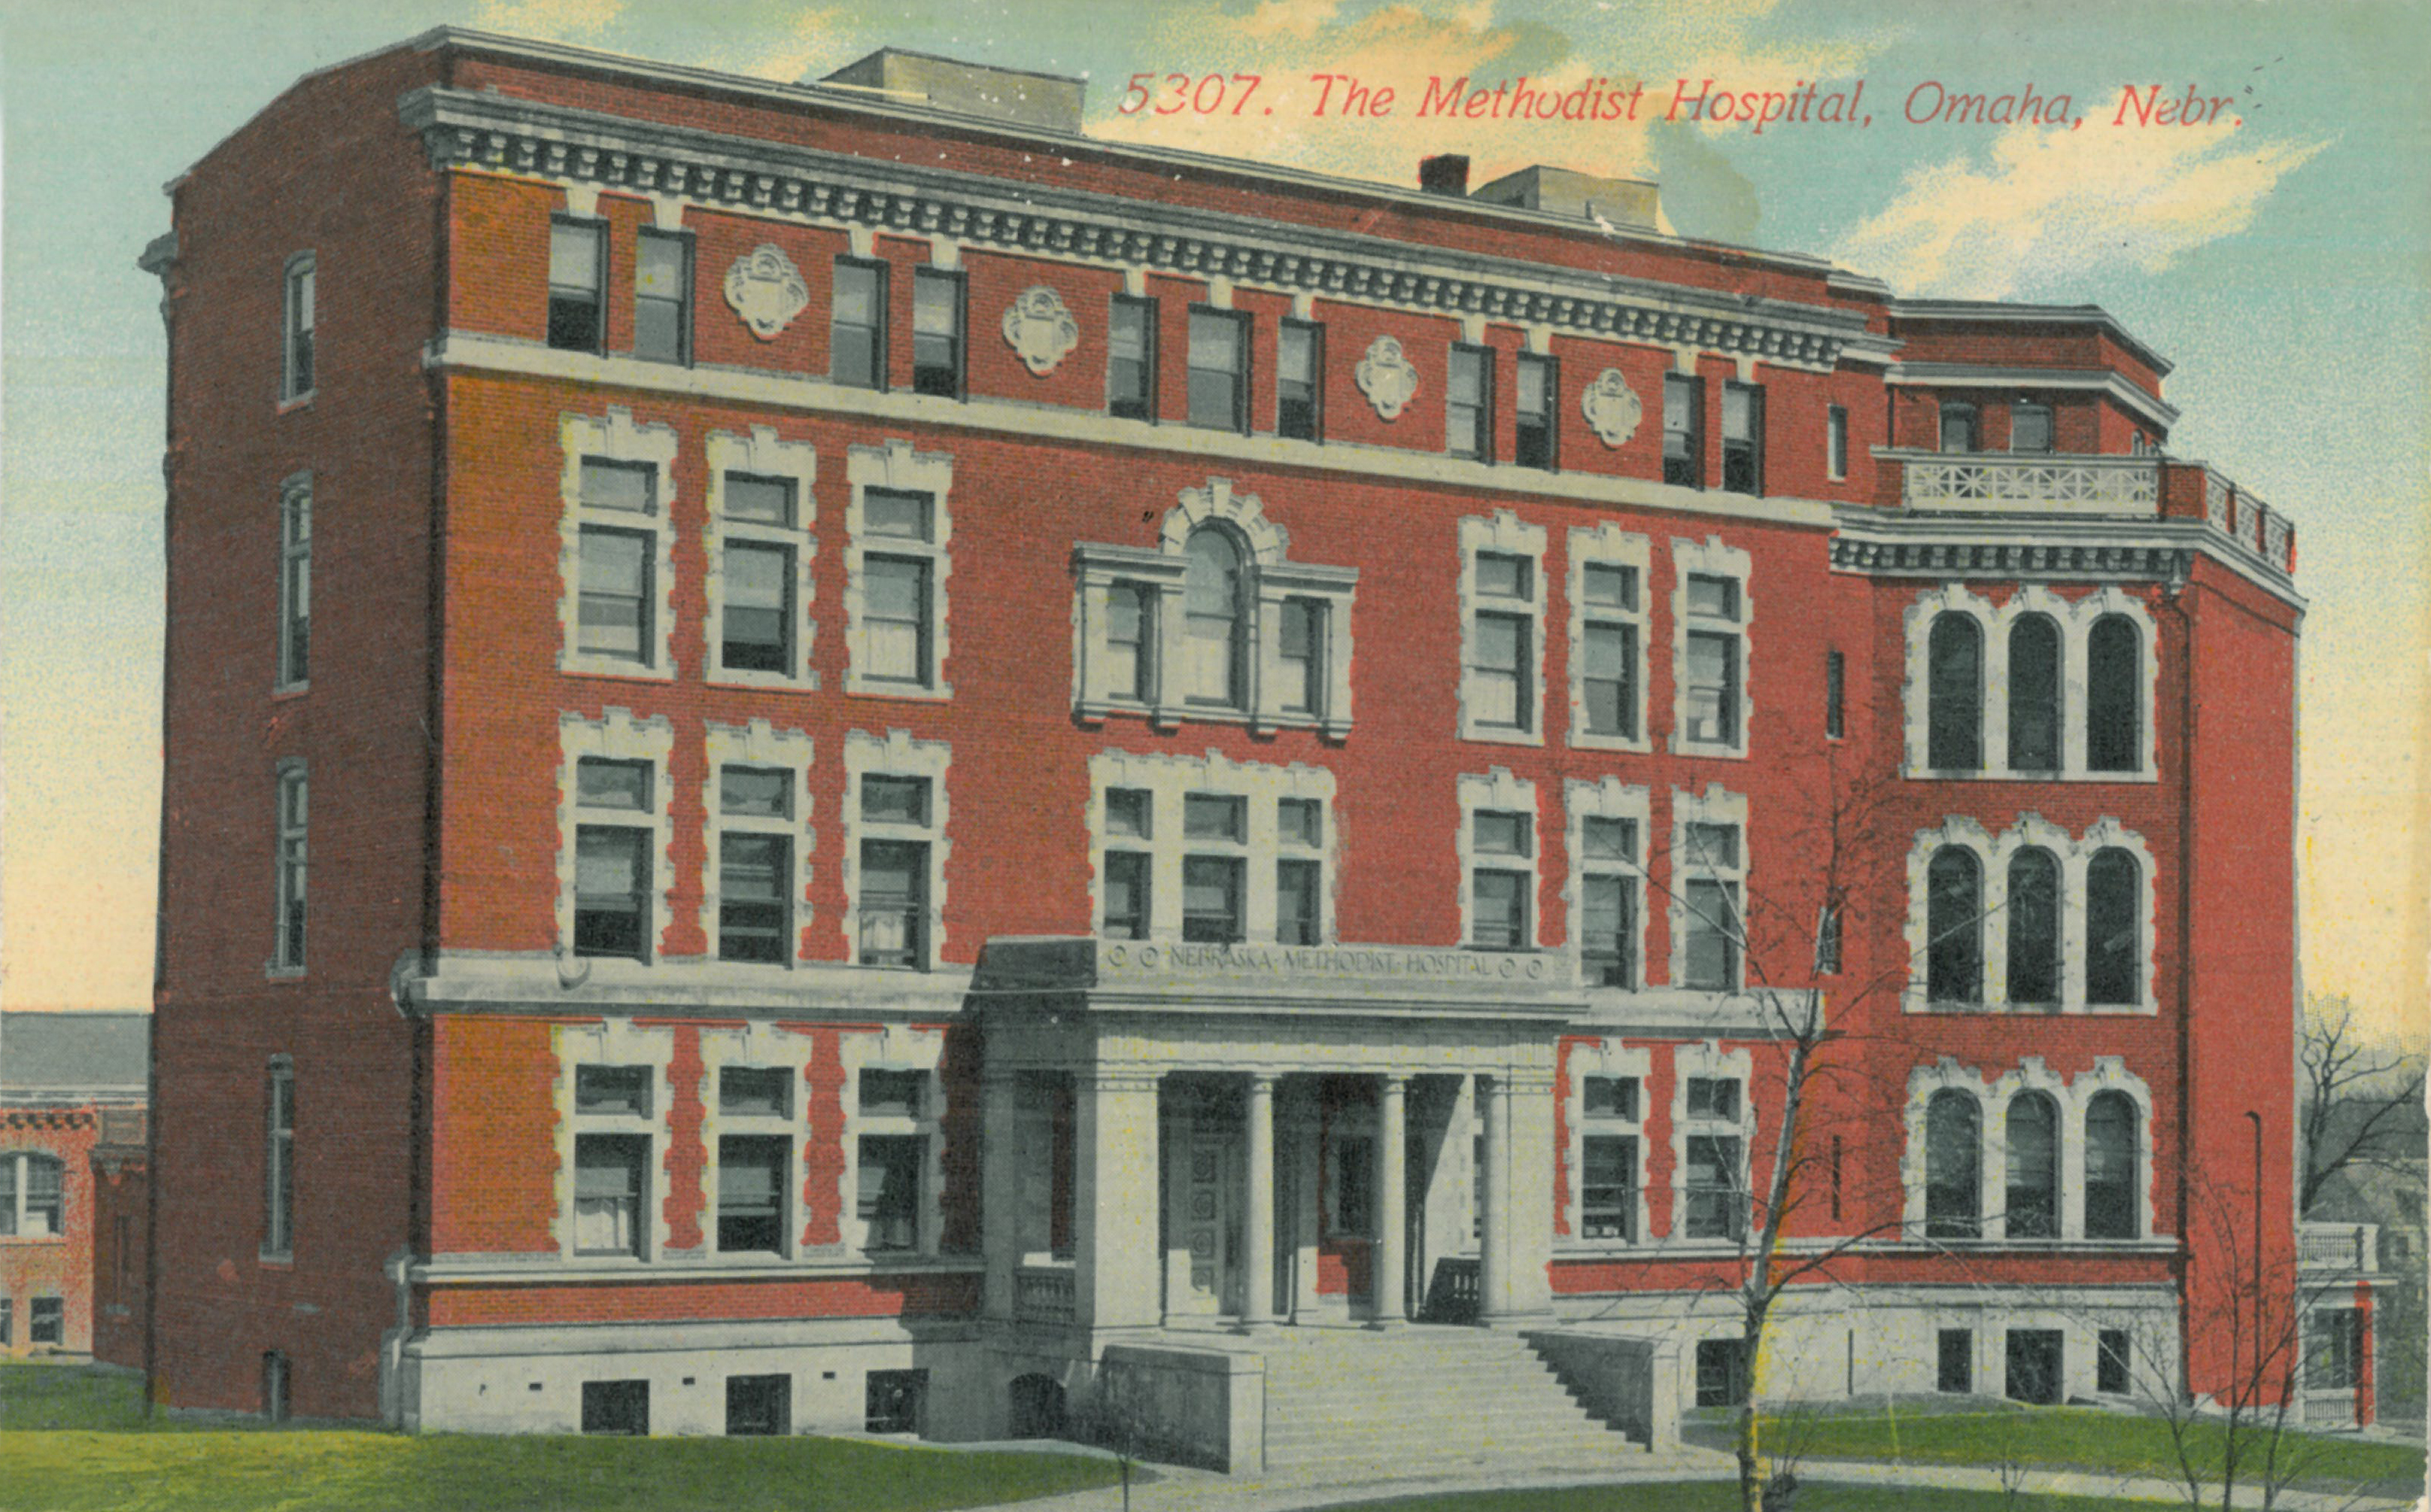 Celebrating our past, looking to the future | MHSNews